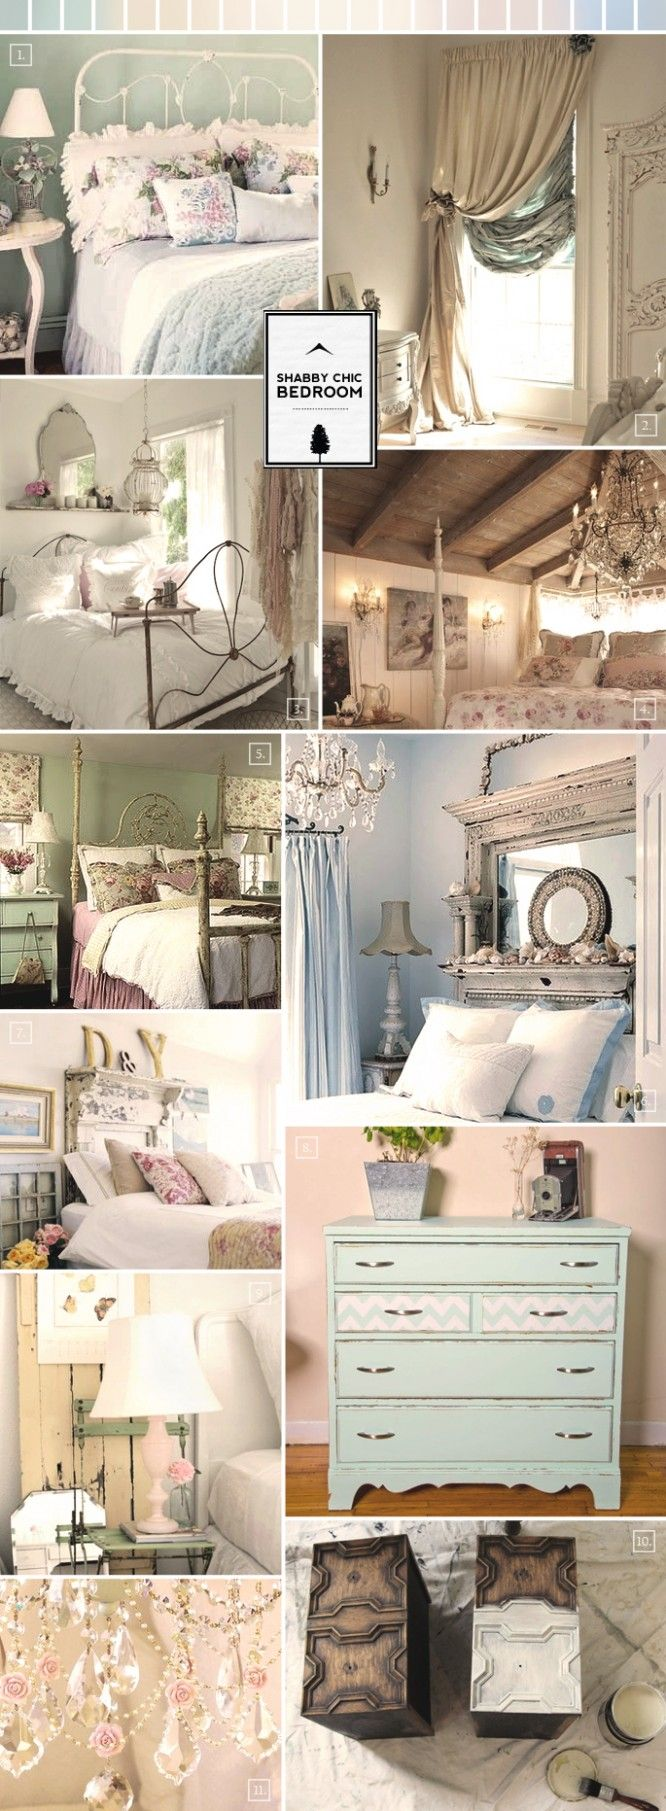 Shabby Chic Bedroom Ideas And Decor Inspiration @ Kylie Trueman This Would  Be Pretty In Your House! Shabby Chic Bedroom Ideas And Decor Inspiration @  Kylie ...